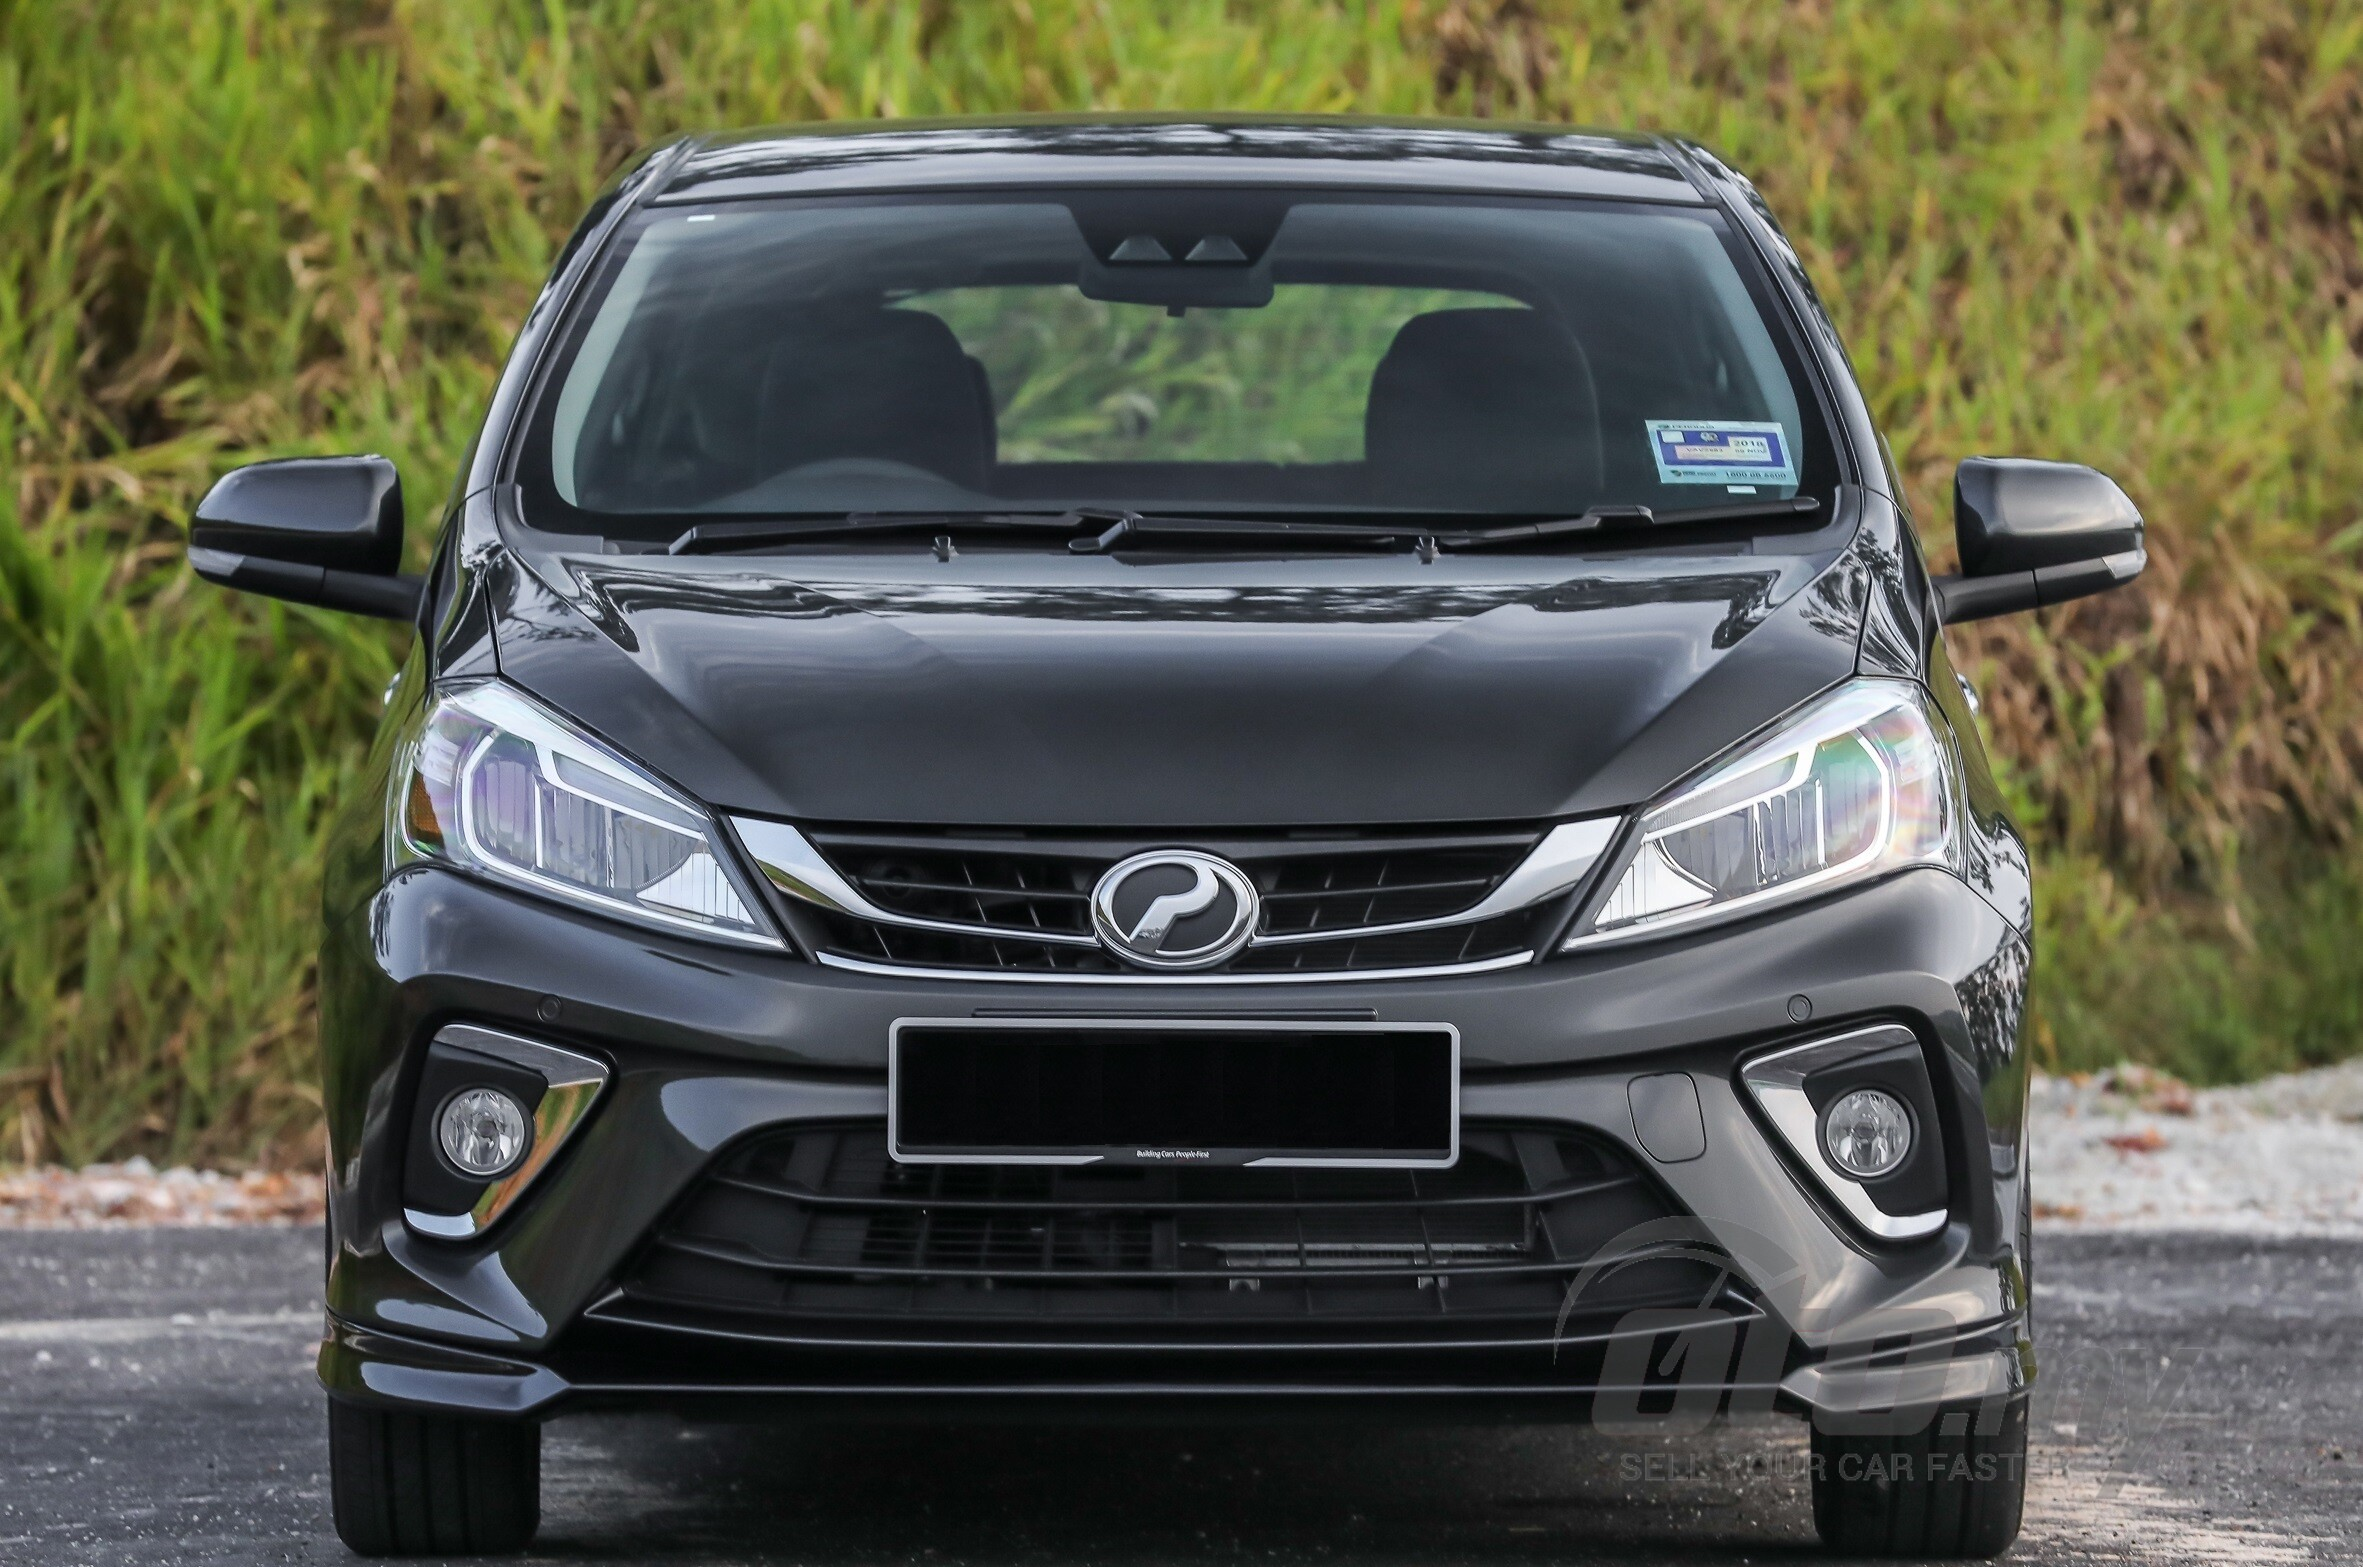 2019 New Perodua Myvi 1.5 Advance #211476 - oto.my